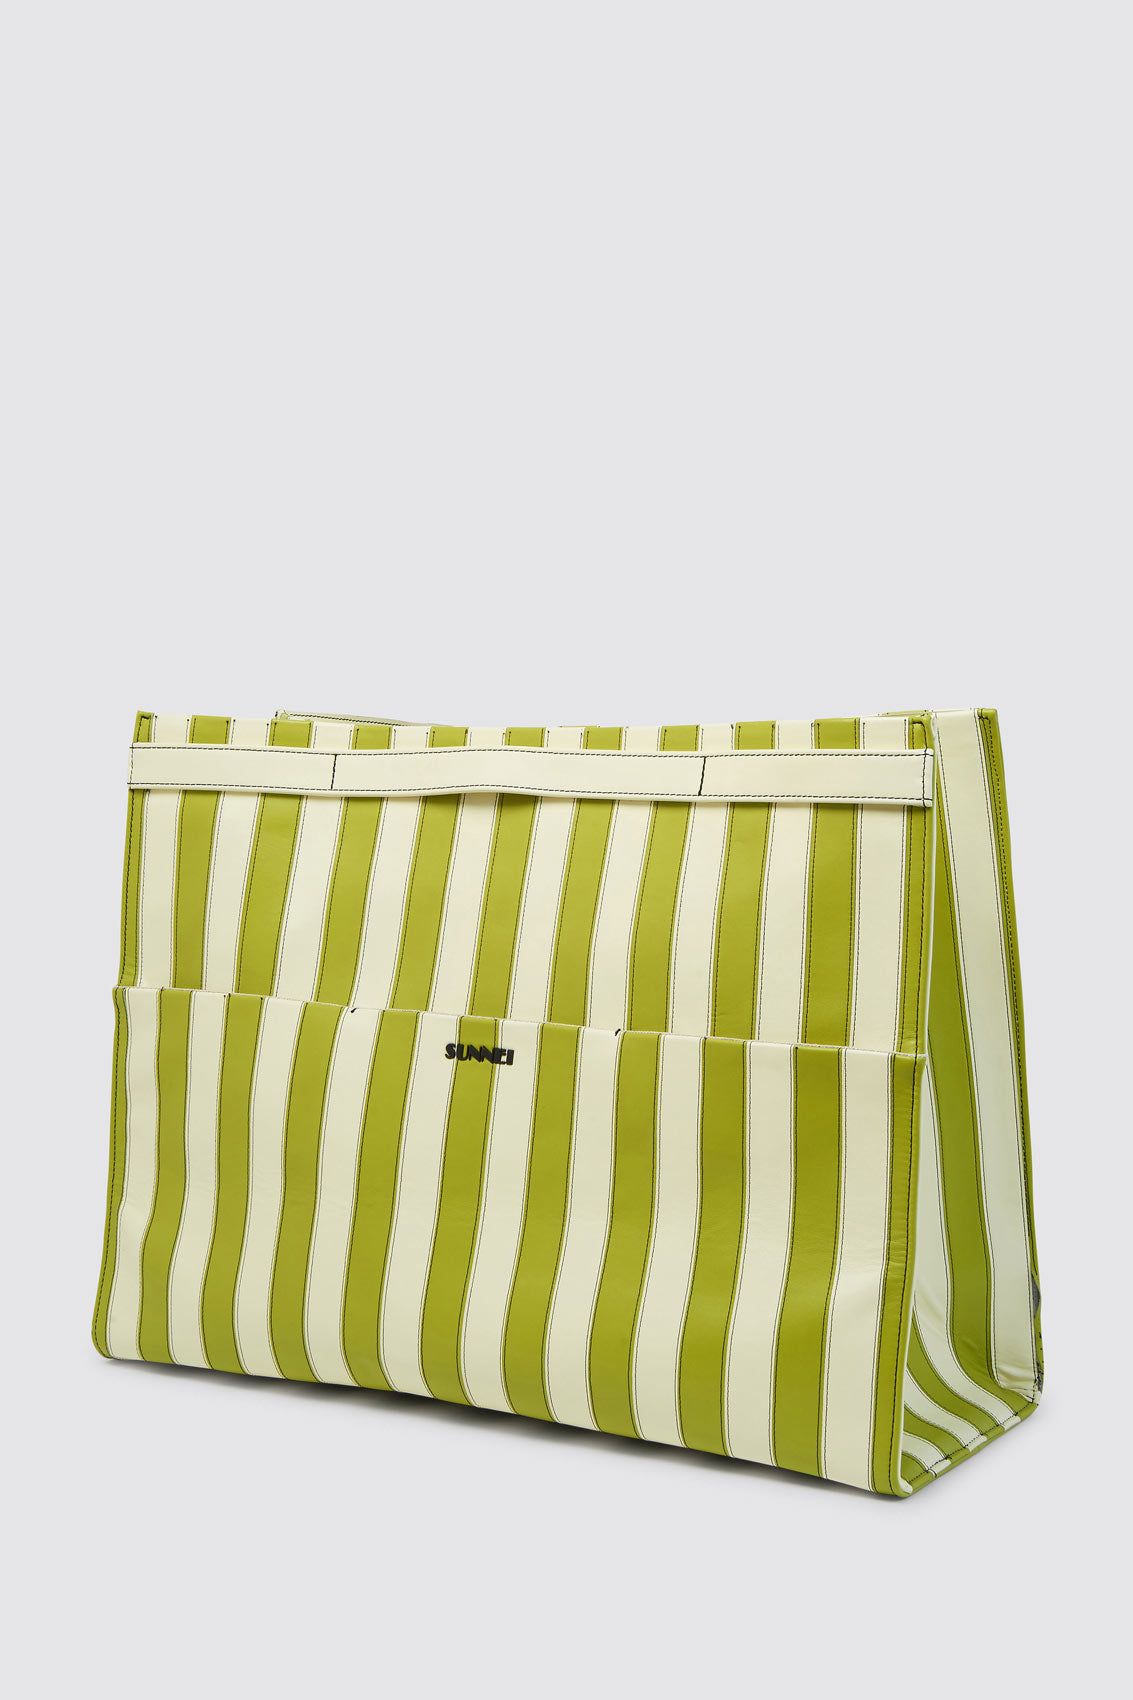 BANANA & LIGHT GREEN PARALLELEPIPEDO BAG